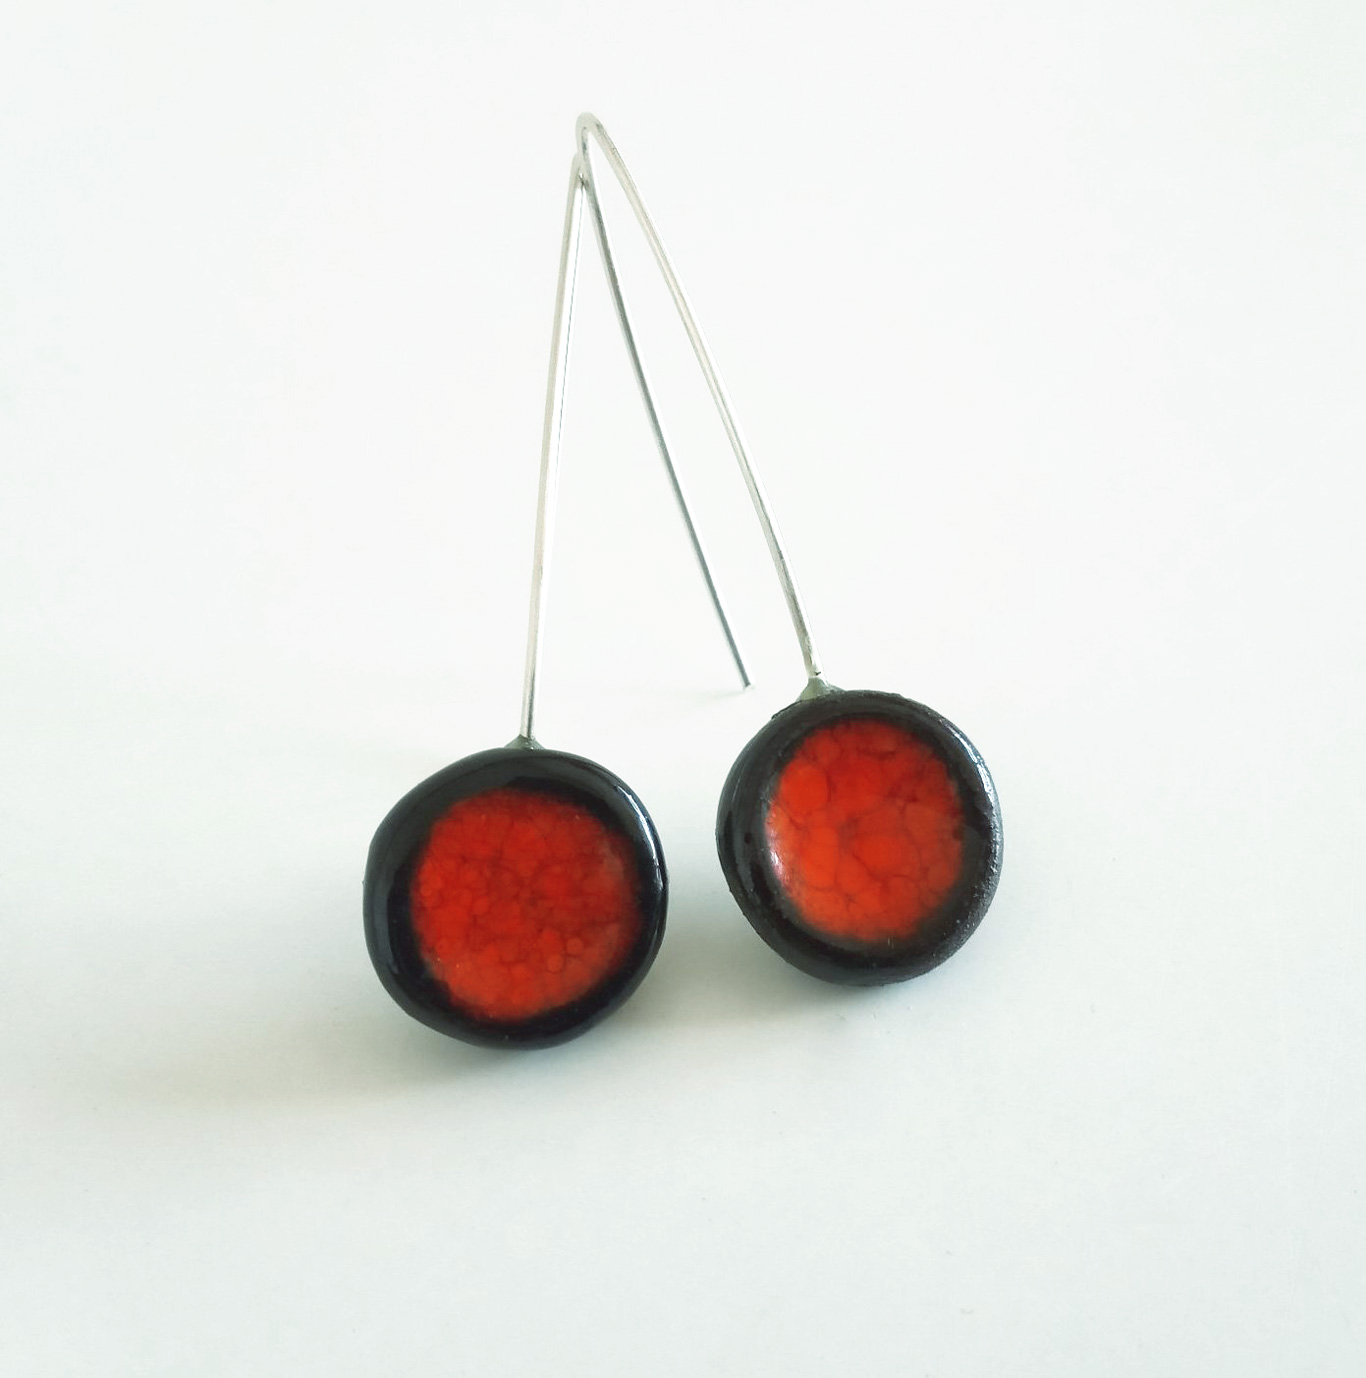 Pendiente-Largo-Coleccion-Rojo-Pasion-workshop-on-line-Hancrafts.from-Menorca made in the island